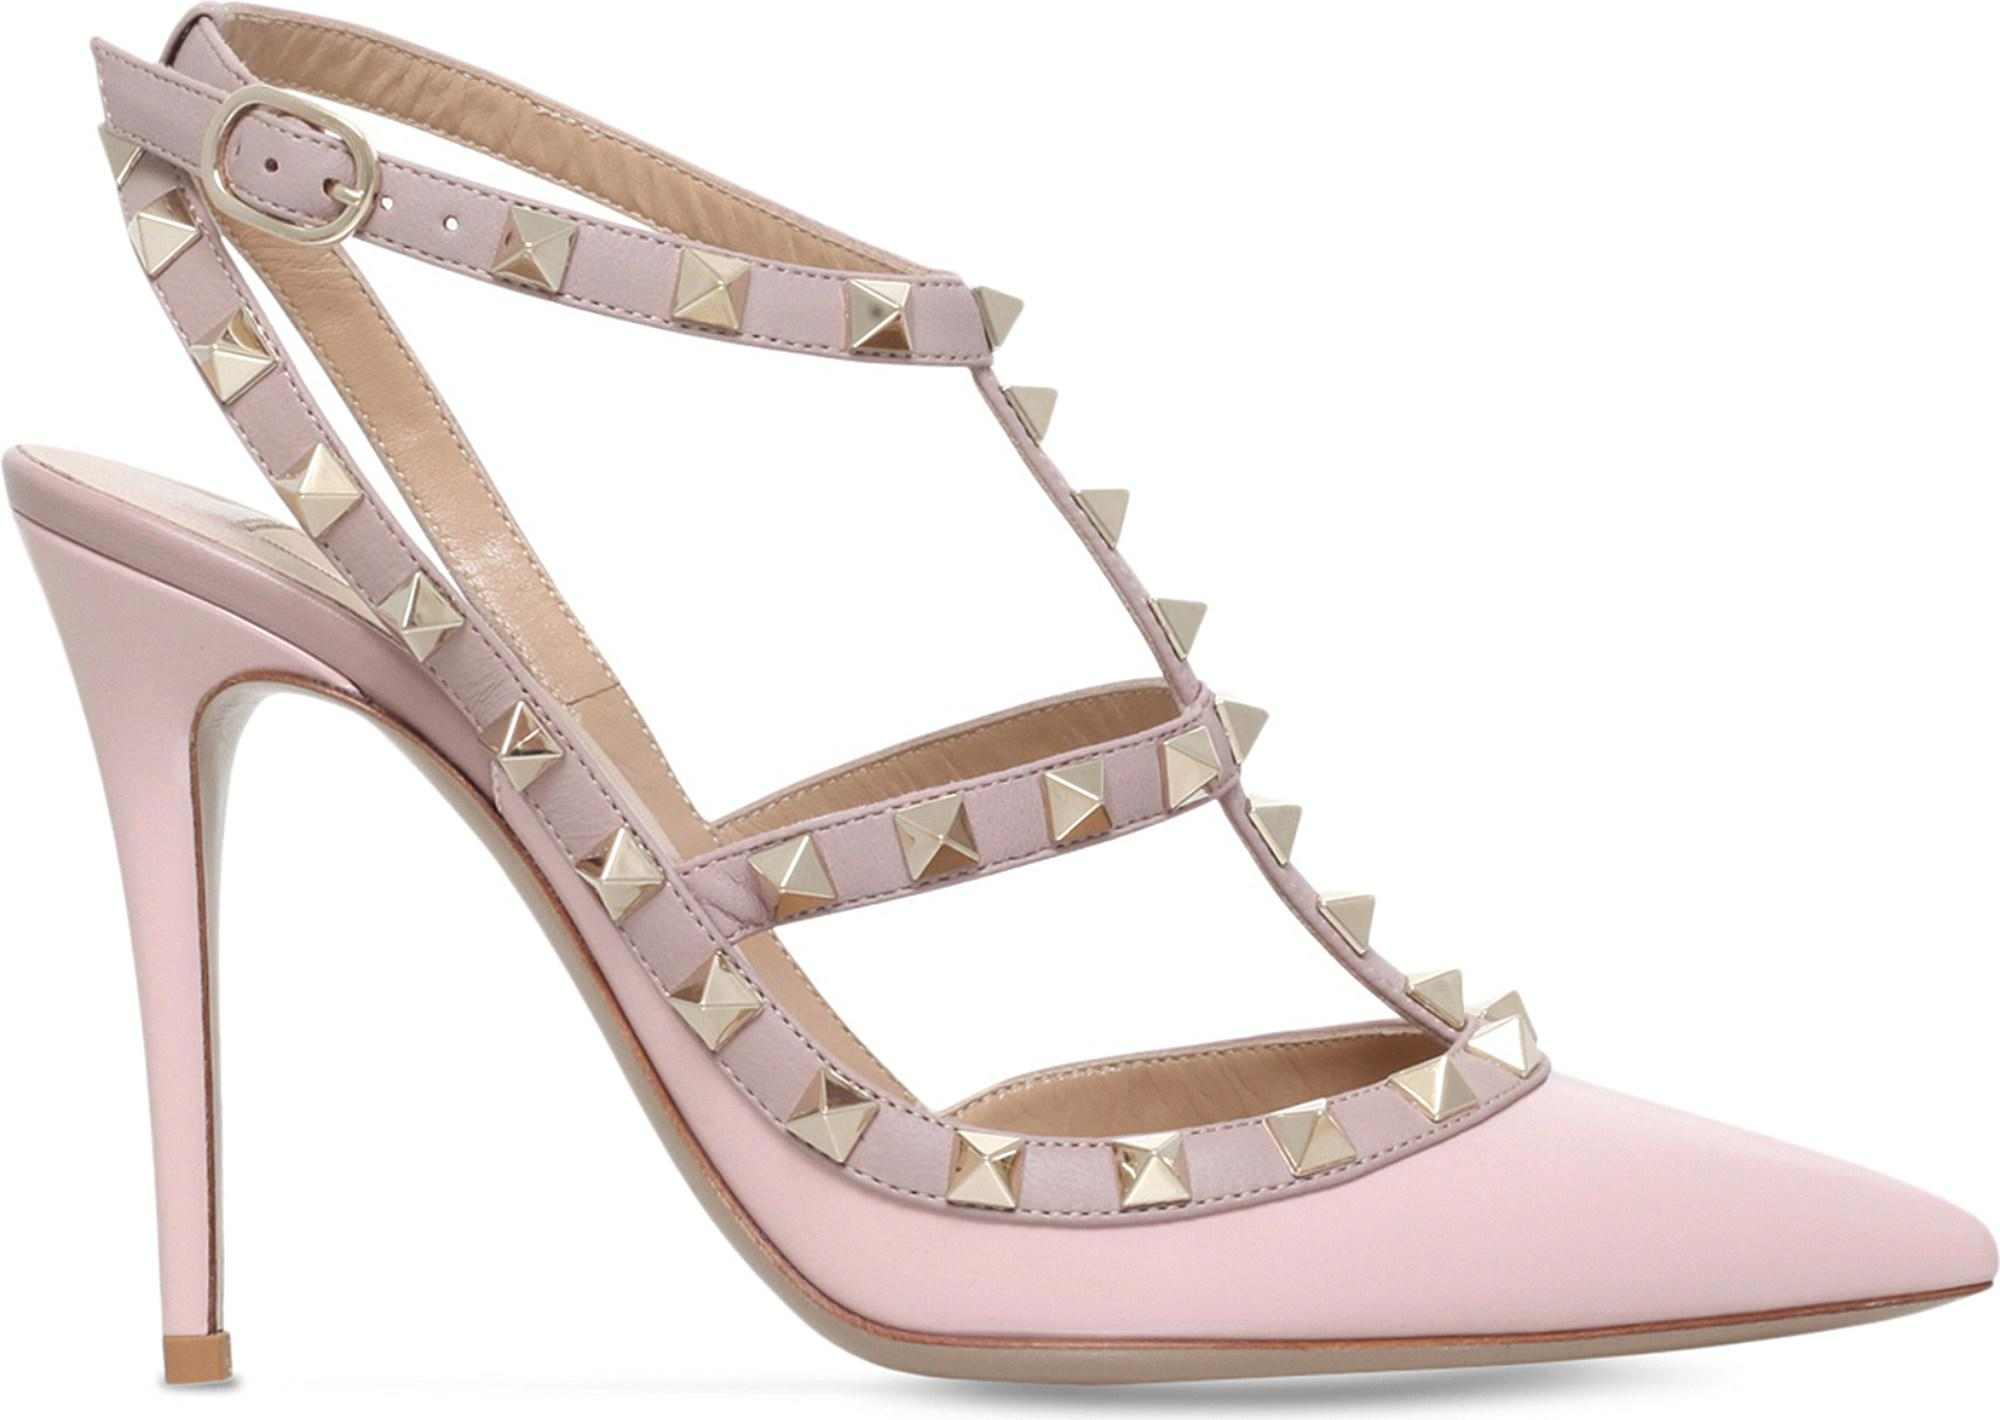 pale pink rockstud 85 leather slingback pumps - Pink & Purple Valentino Discount Pictures Low Cost 100% Original Online Discount Footaction aiweEor